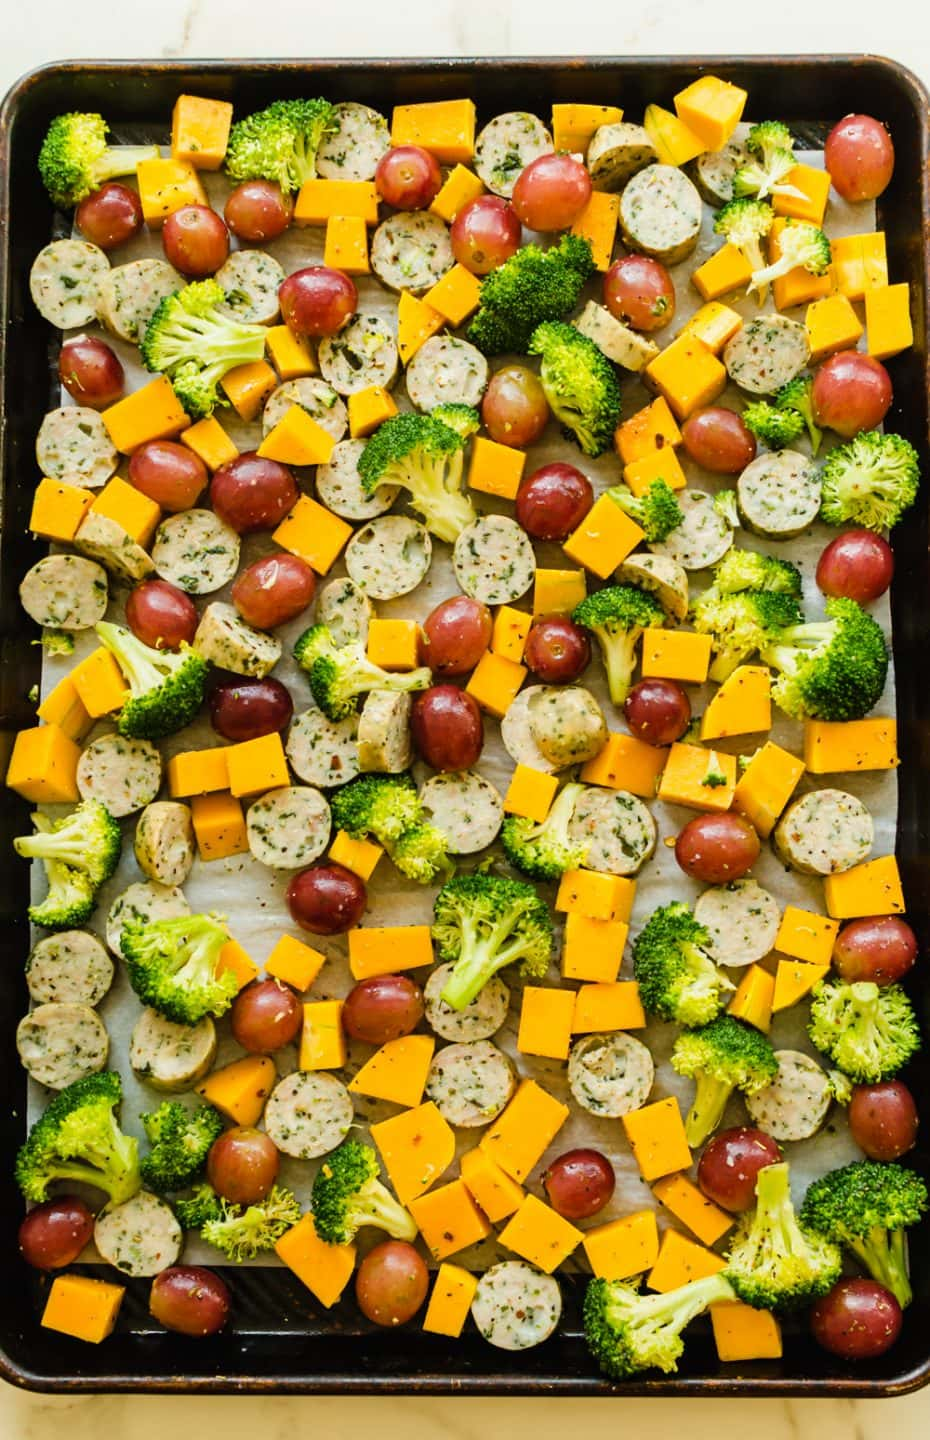 A sheet pan filled with cut veggies ready for roasting.